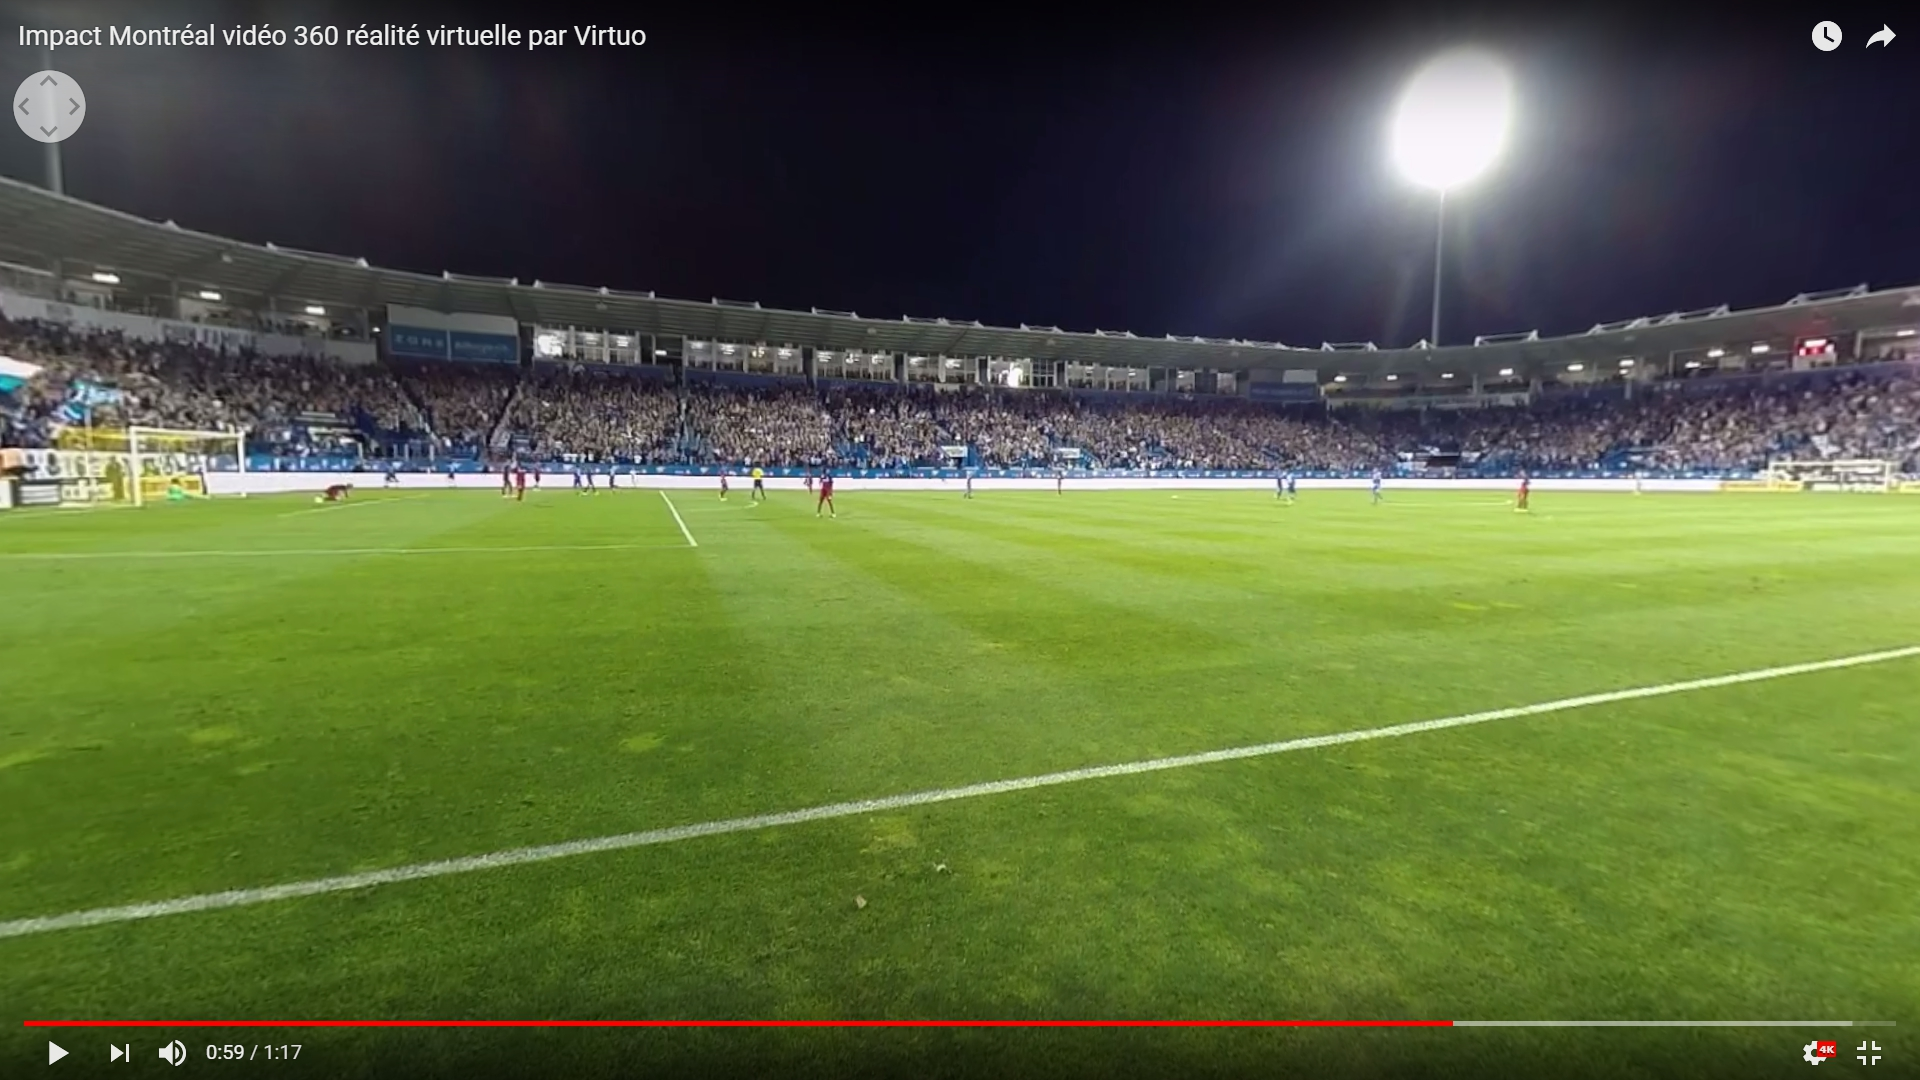 Montreal Impact Soccer Team Video 360 Virtual Reality By